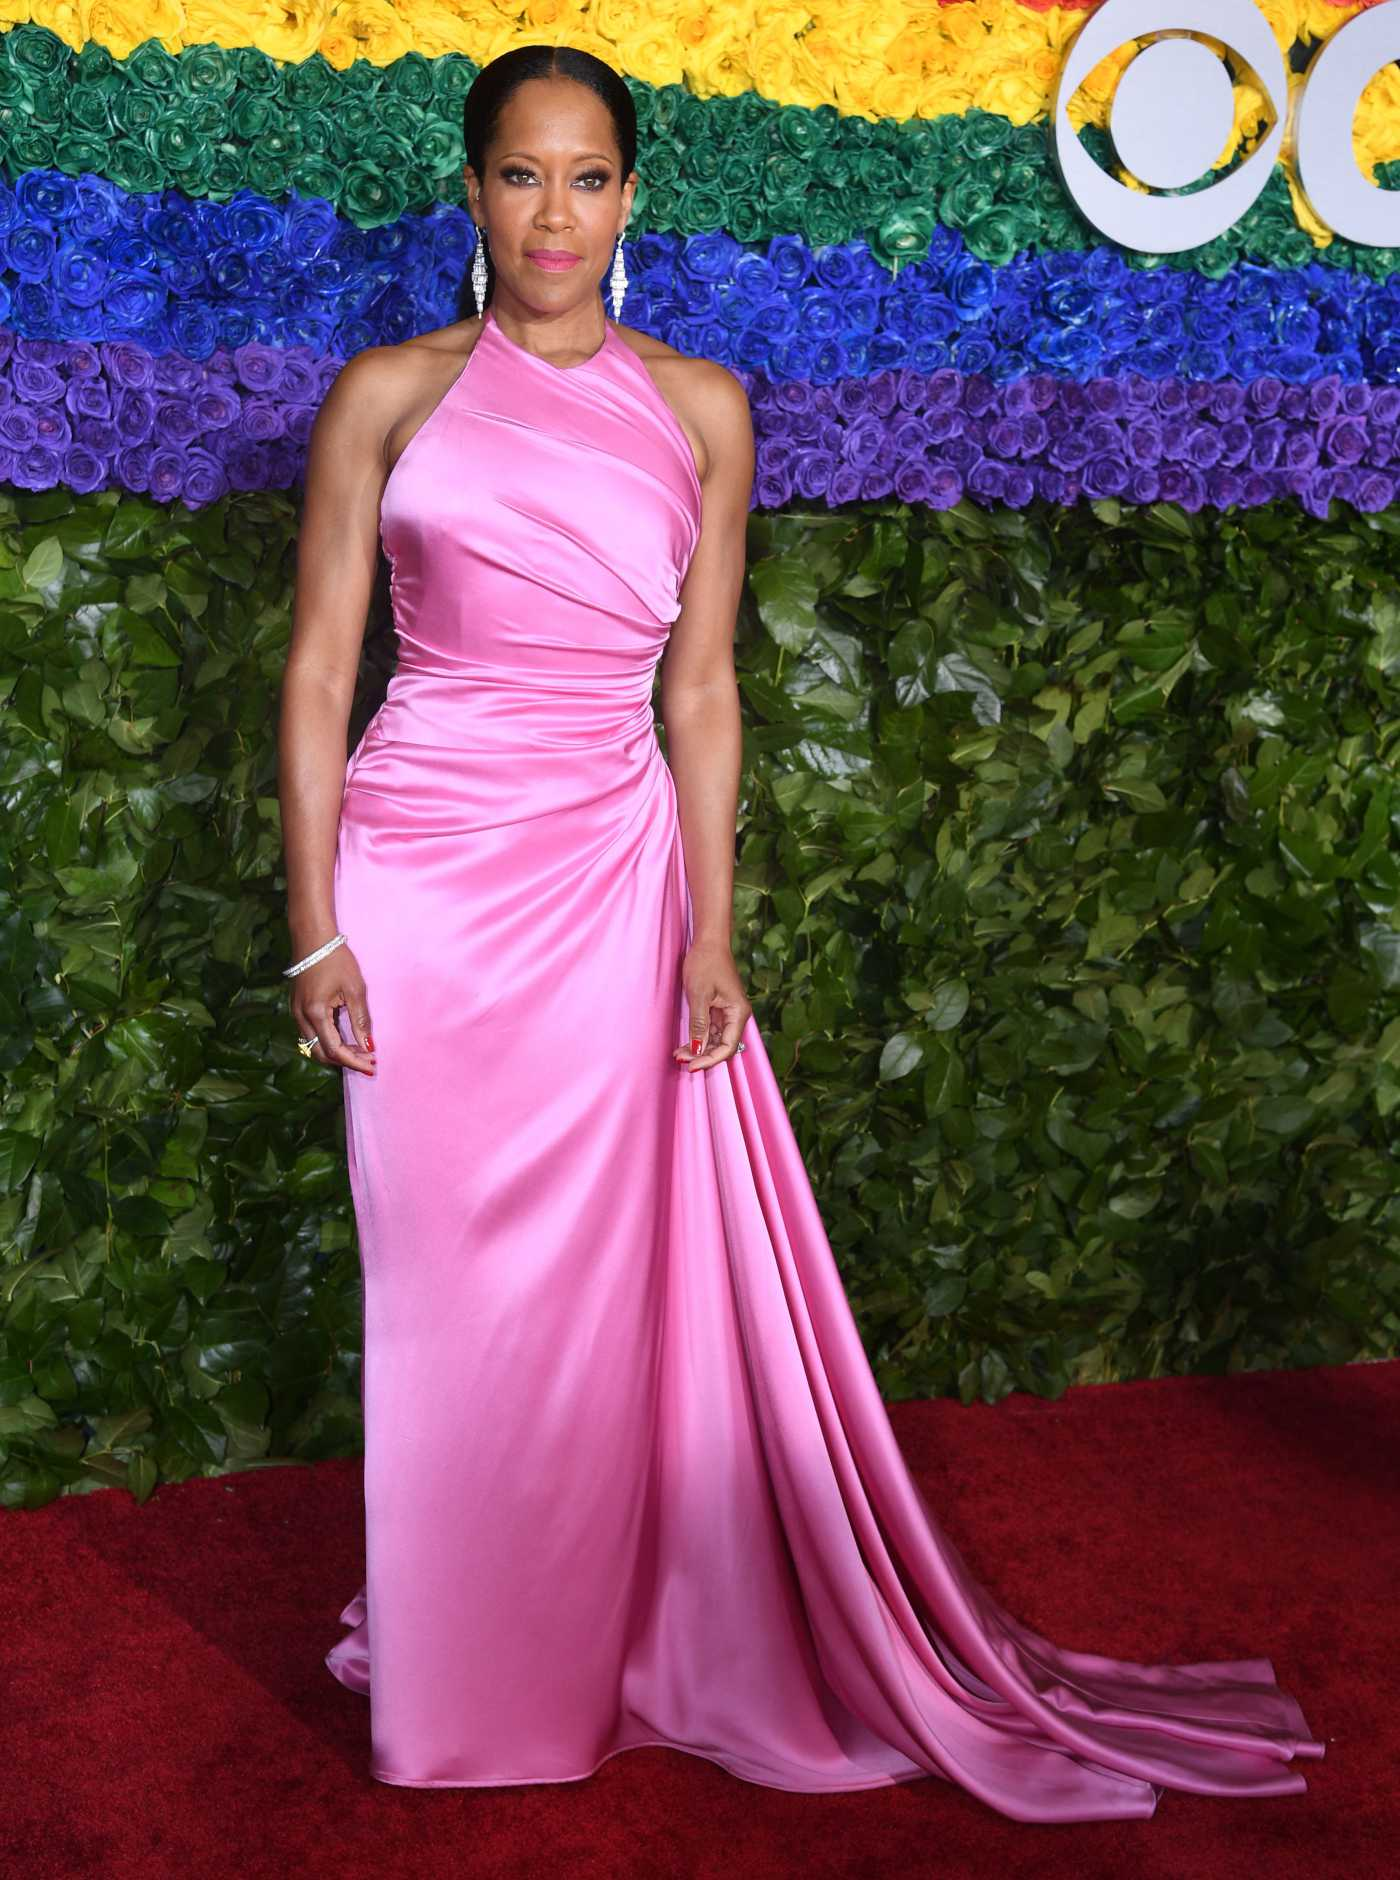 Regina King Attends the 73rd Annual Tony Awards at Radio City Music Hall in New York 06/09/2019